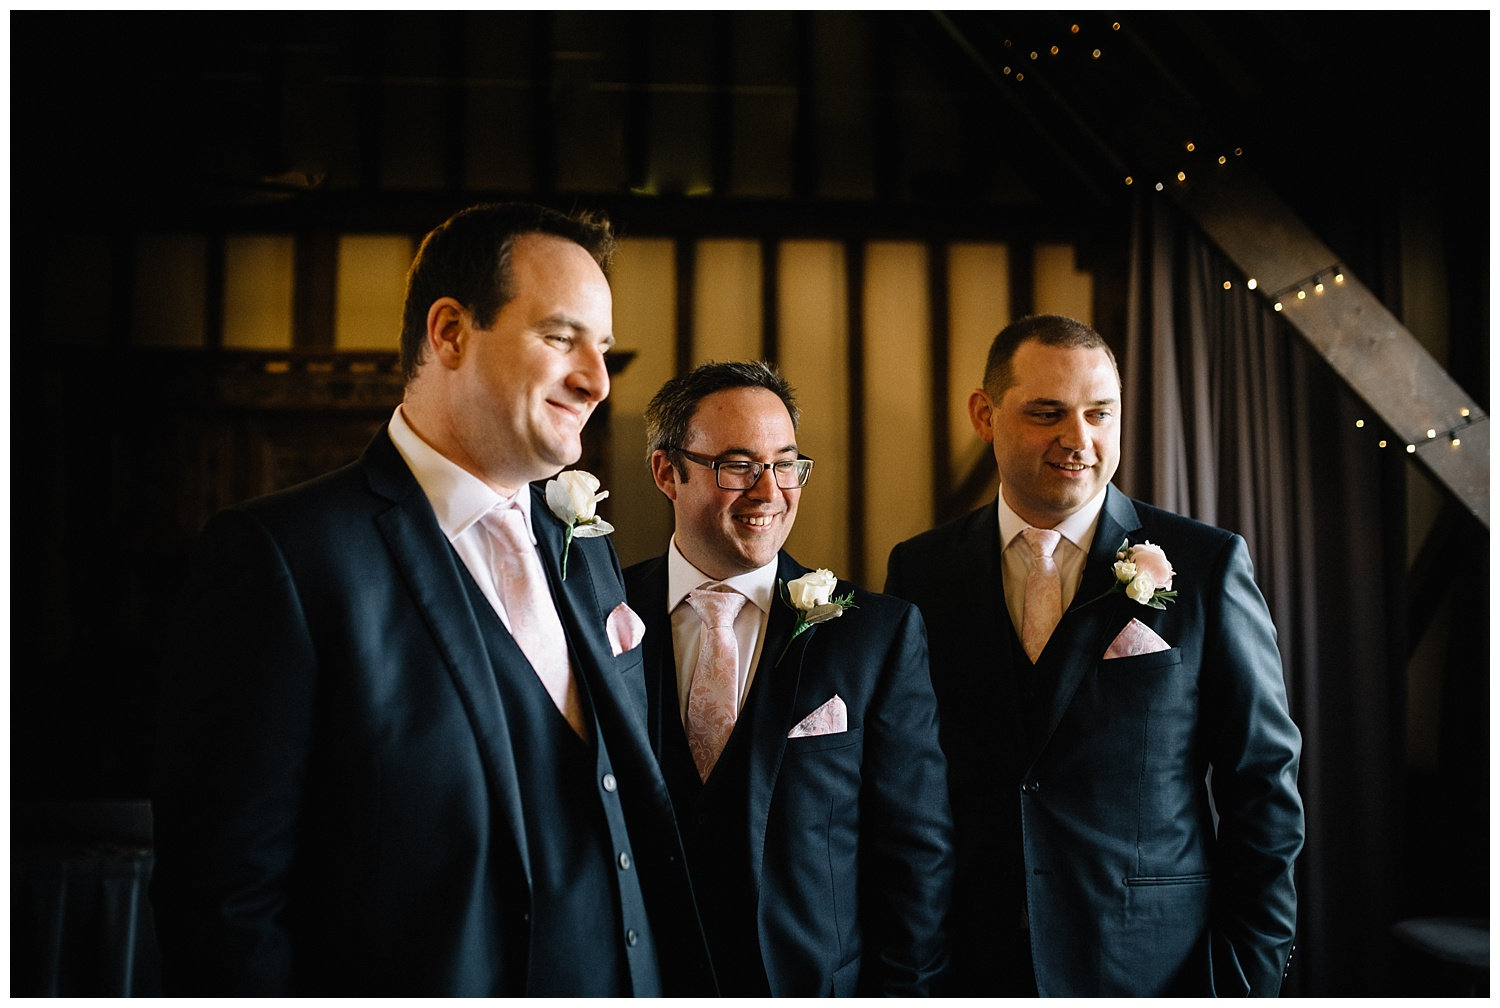 Groom and ushers waiting for bride before wedding ceremony at Essendon Country club in hertfordshire